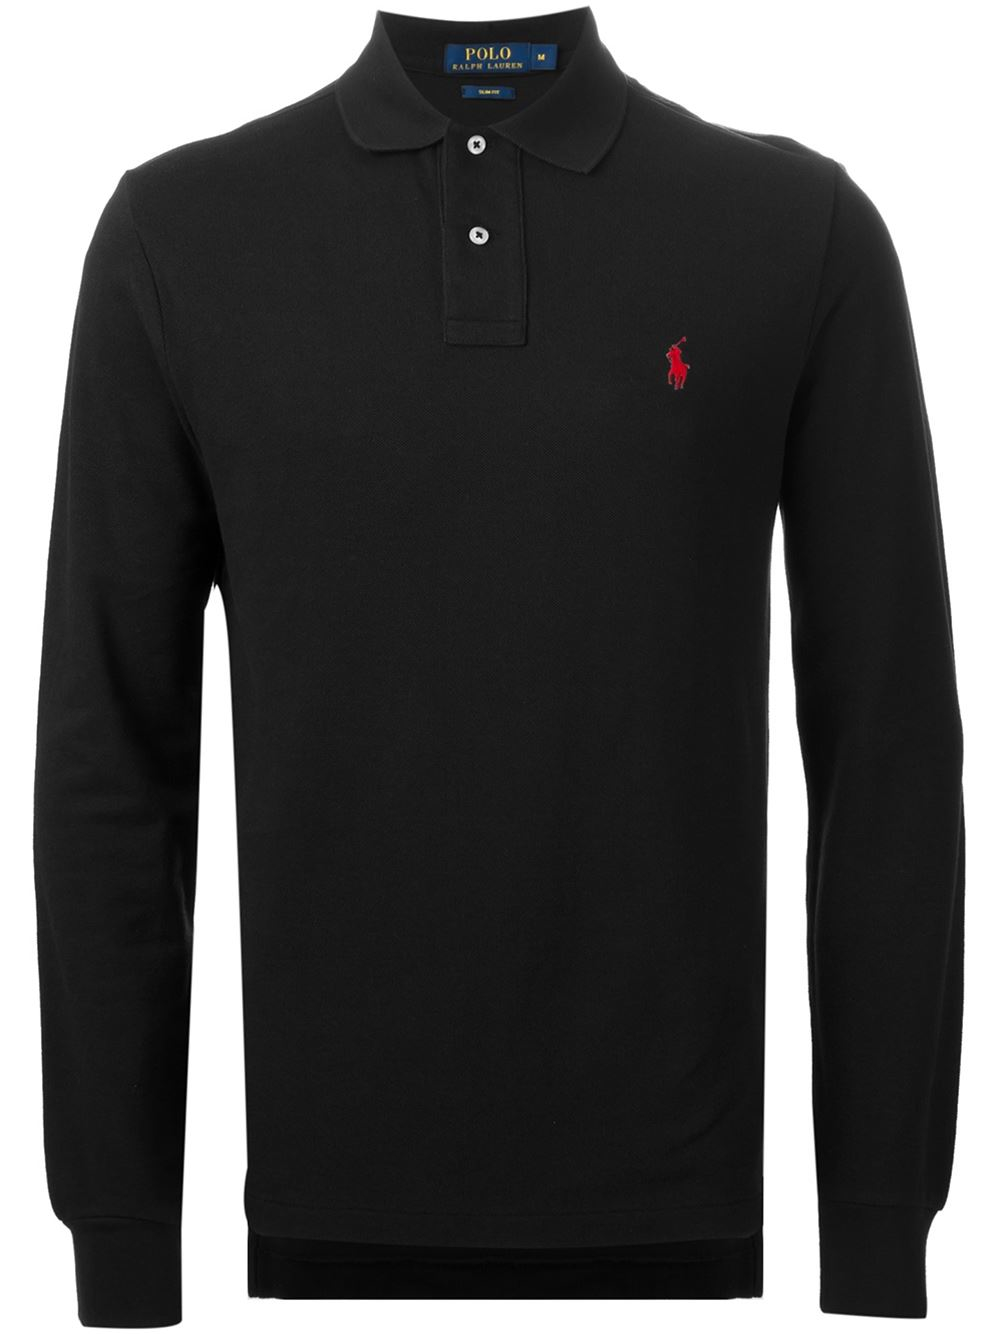 Polo ralph lauren slim fit polo shirt in black for men lyst for Black fitted polo shirt